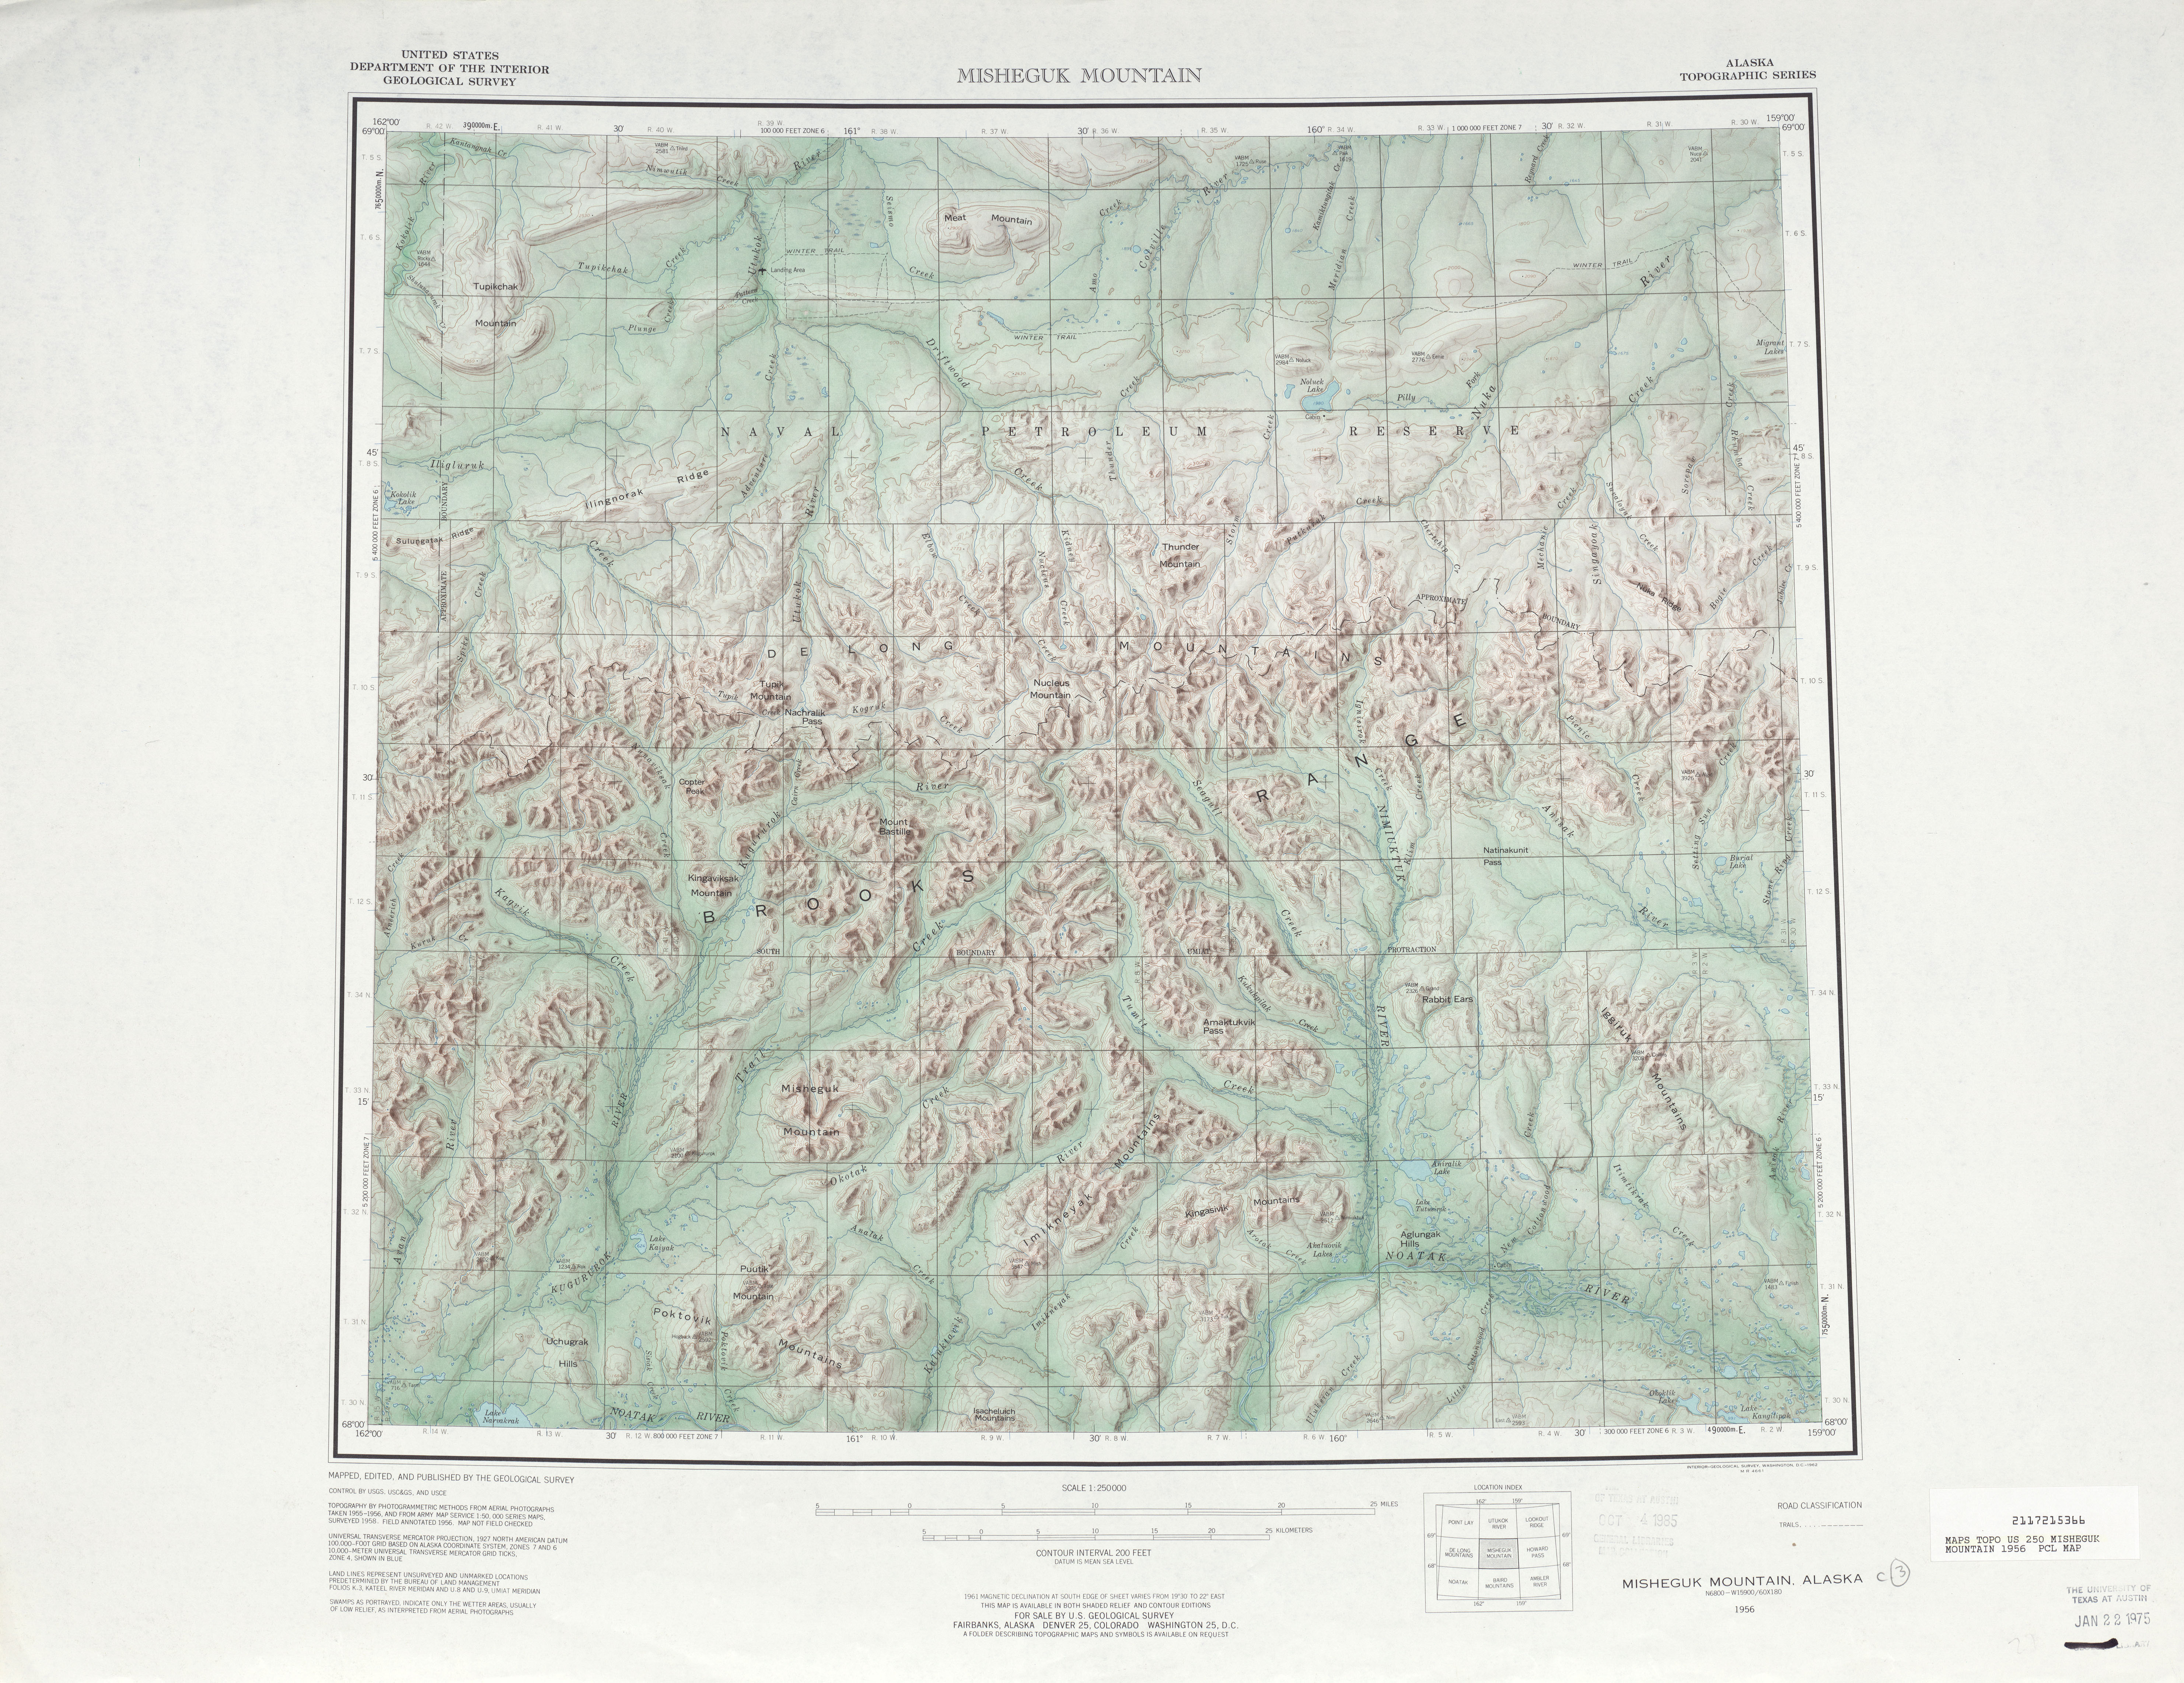 Misheguk Mountain Shaded Relief Map Sheet, United States 1956